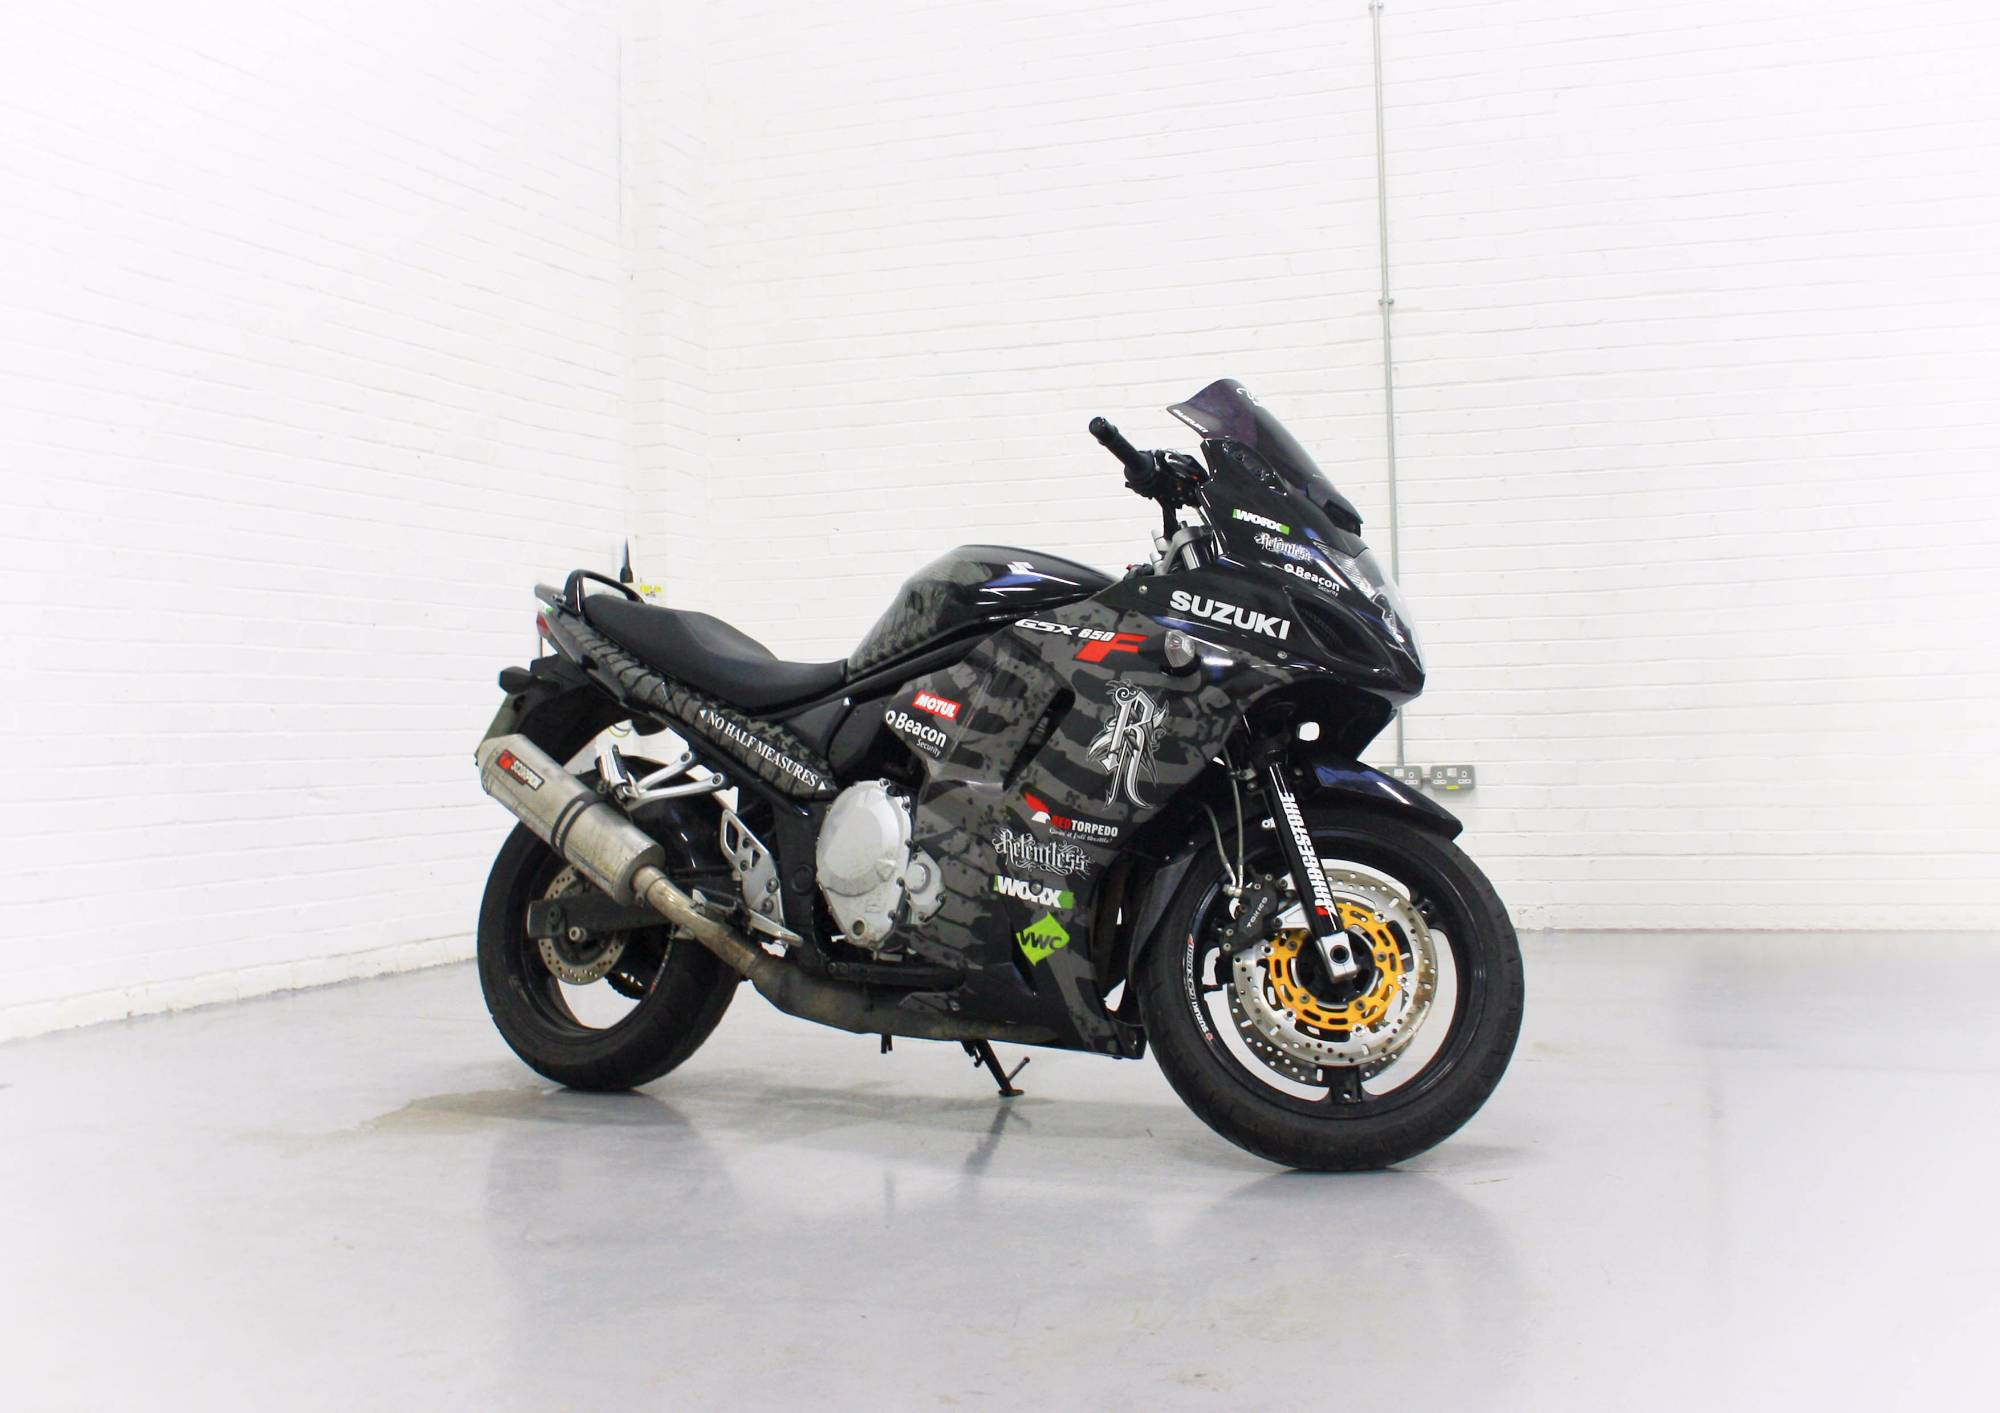 suzuki gsx 650f relentless design 3m ij180 personal vehicle wrap project. Black Bedroom Furniture Sets. Home Design Ideas